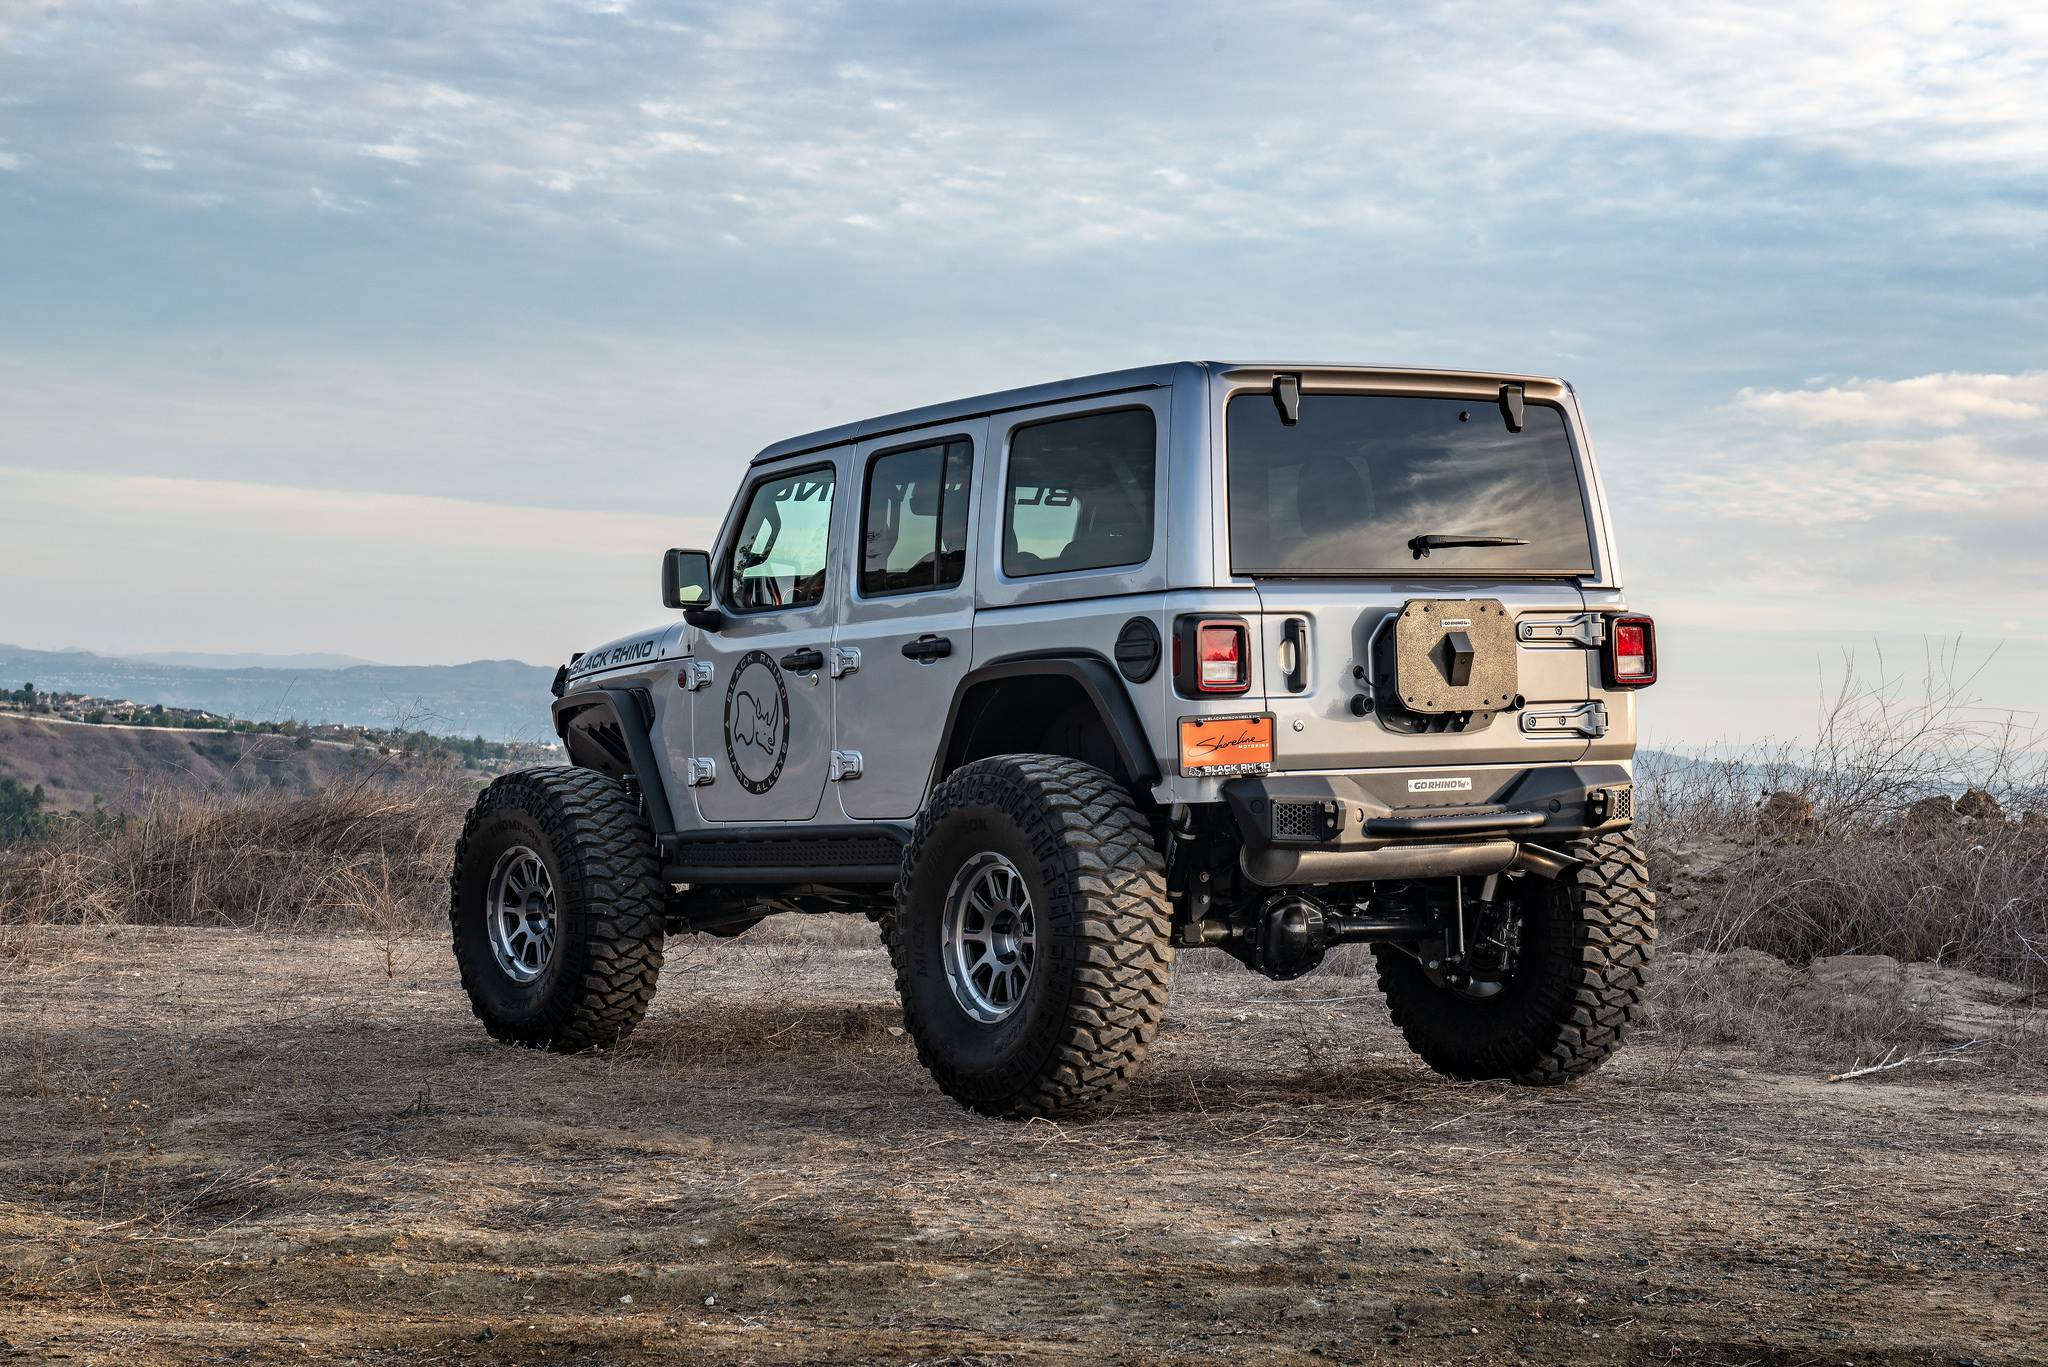 17 Jeep Wrangler Rubicon Jlu 2018 Hd High Quality Images